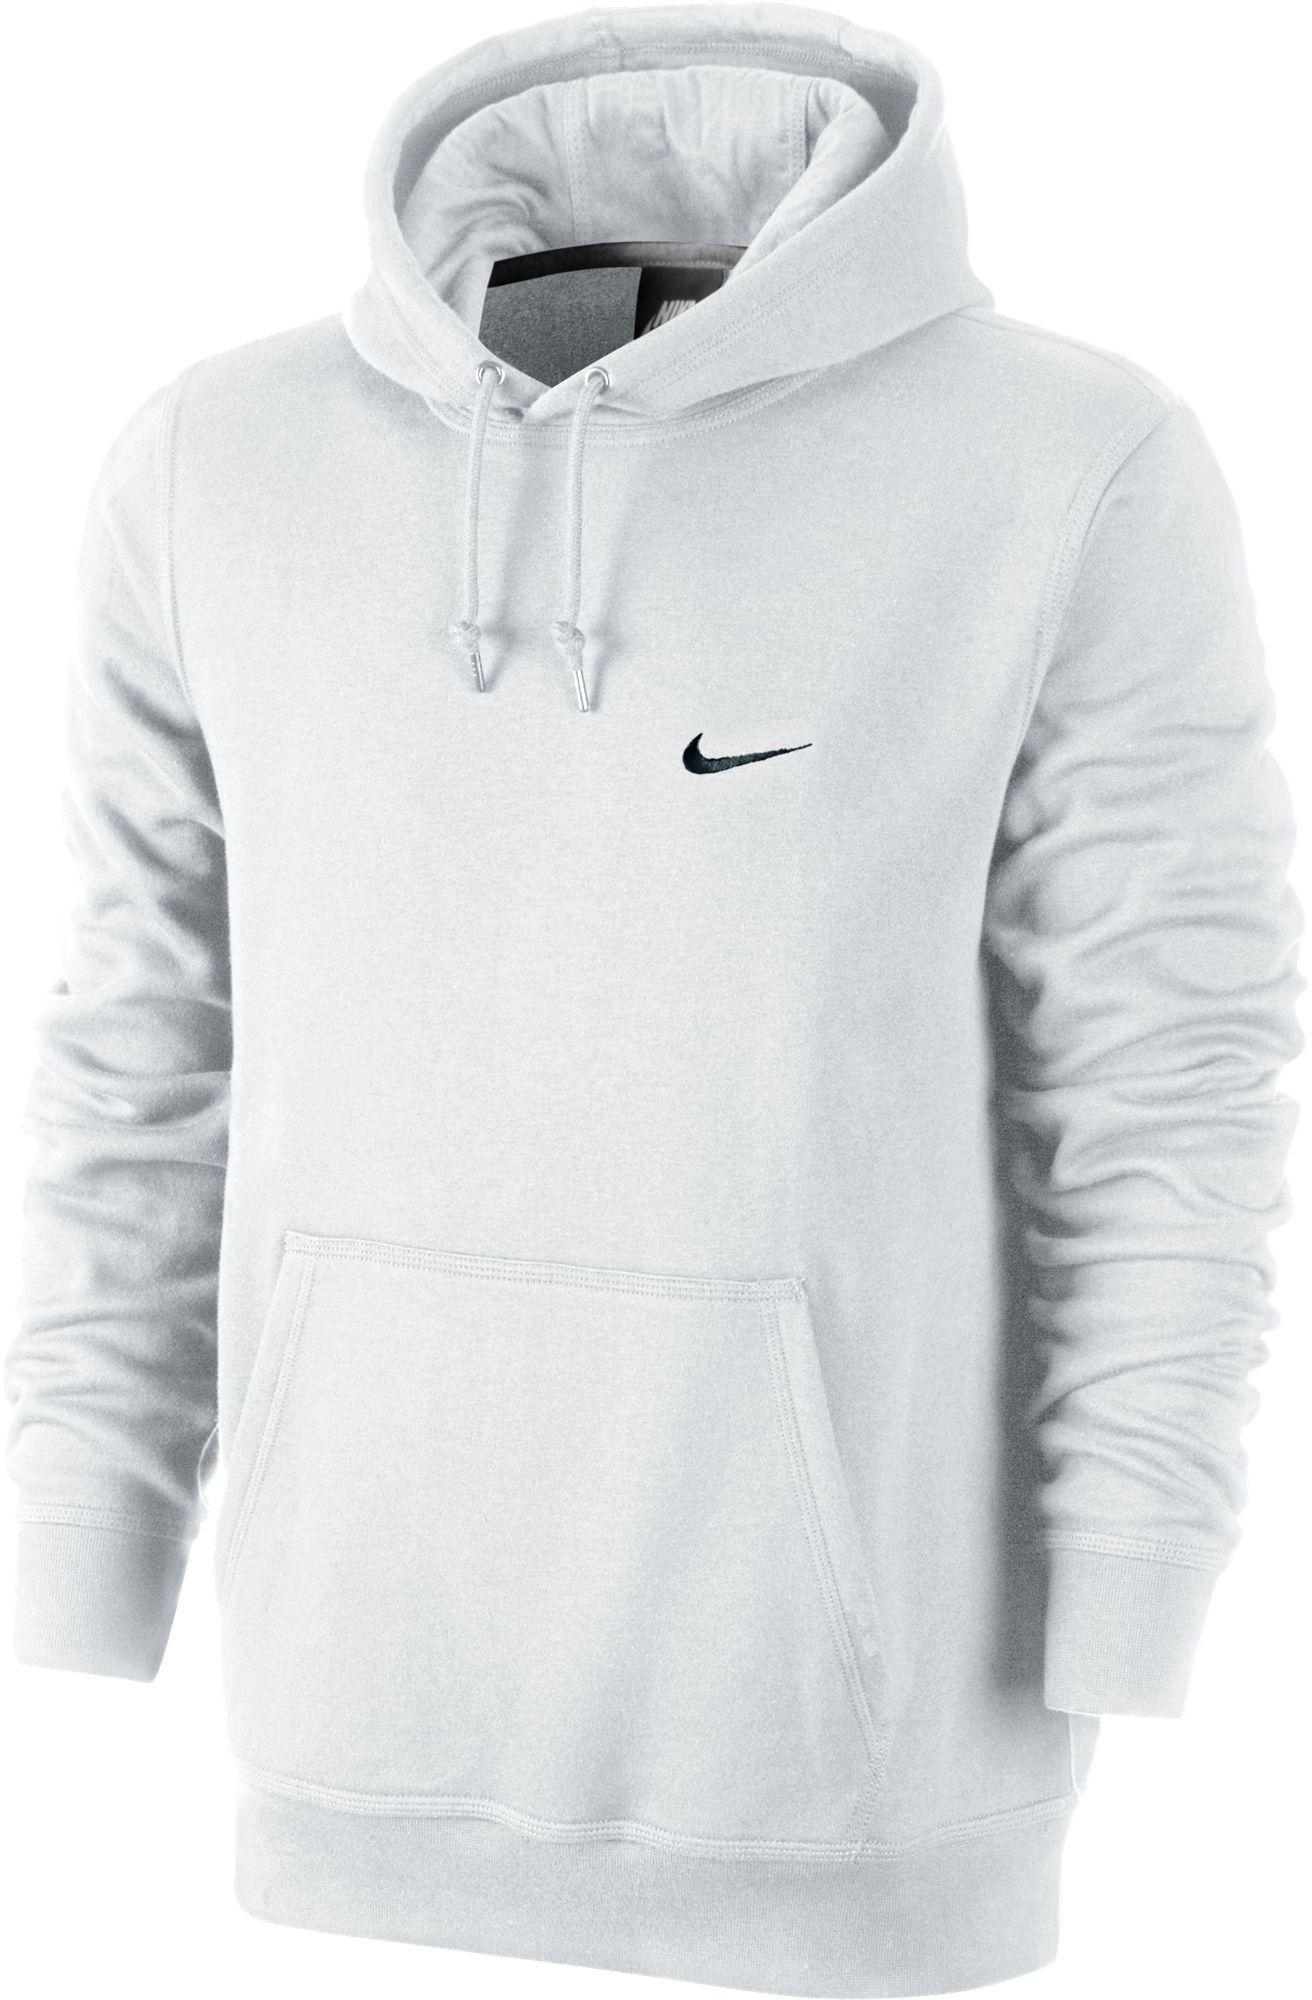 new concept 41939 511d3 Nike Classic Club Fleece Hoodie in White/Black (White) for ...